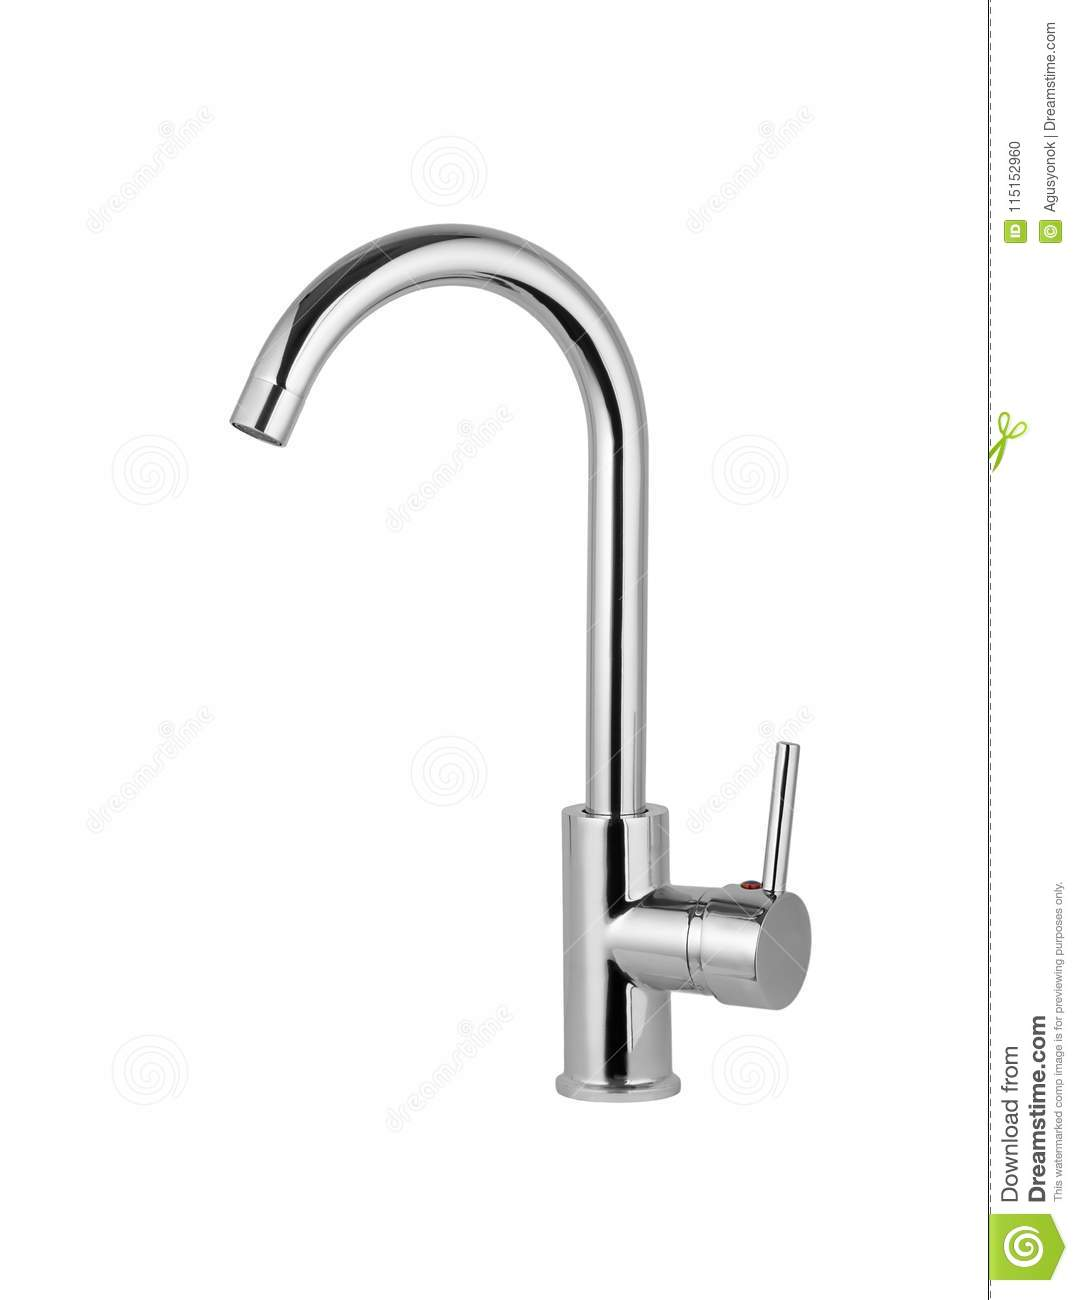 Water Tap Faucet For The Bathroom Kitchen Mixer Cold Hot Water